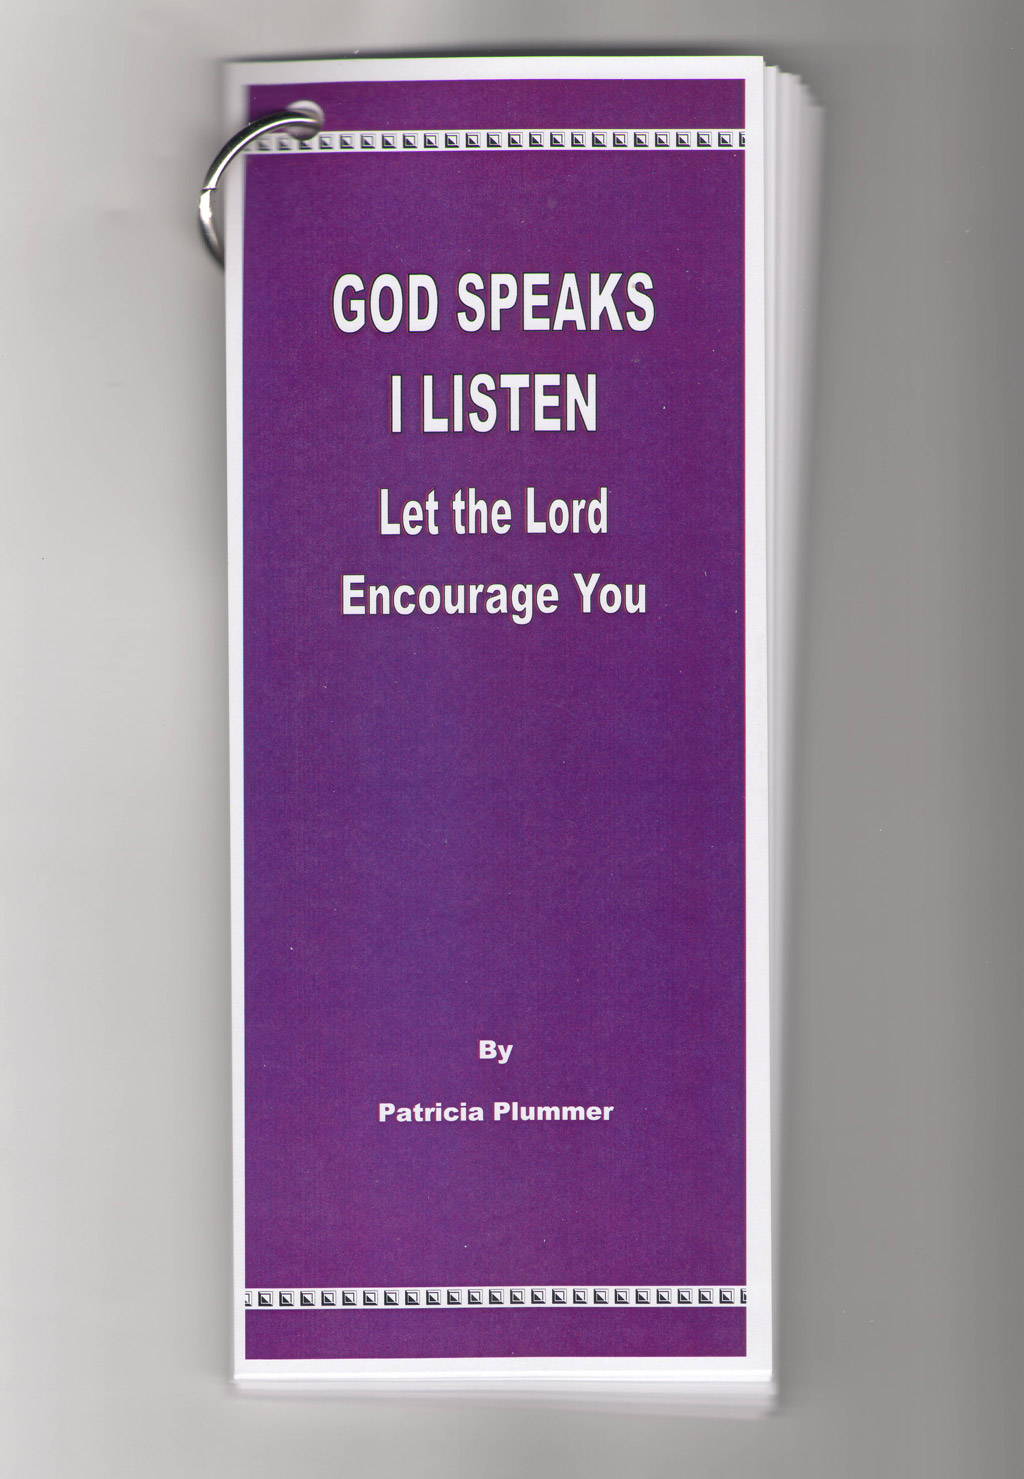 God Speaks I Listen, Let the Lord Encourage You